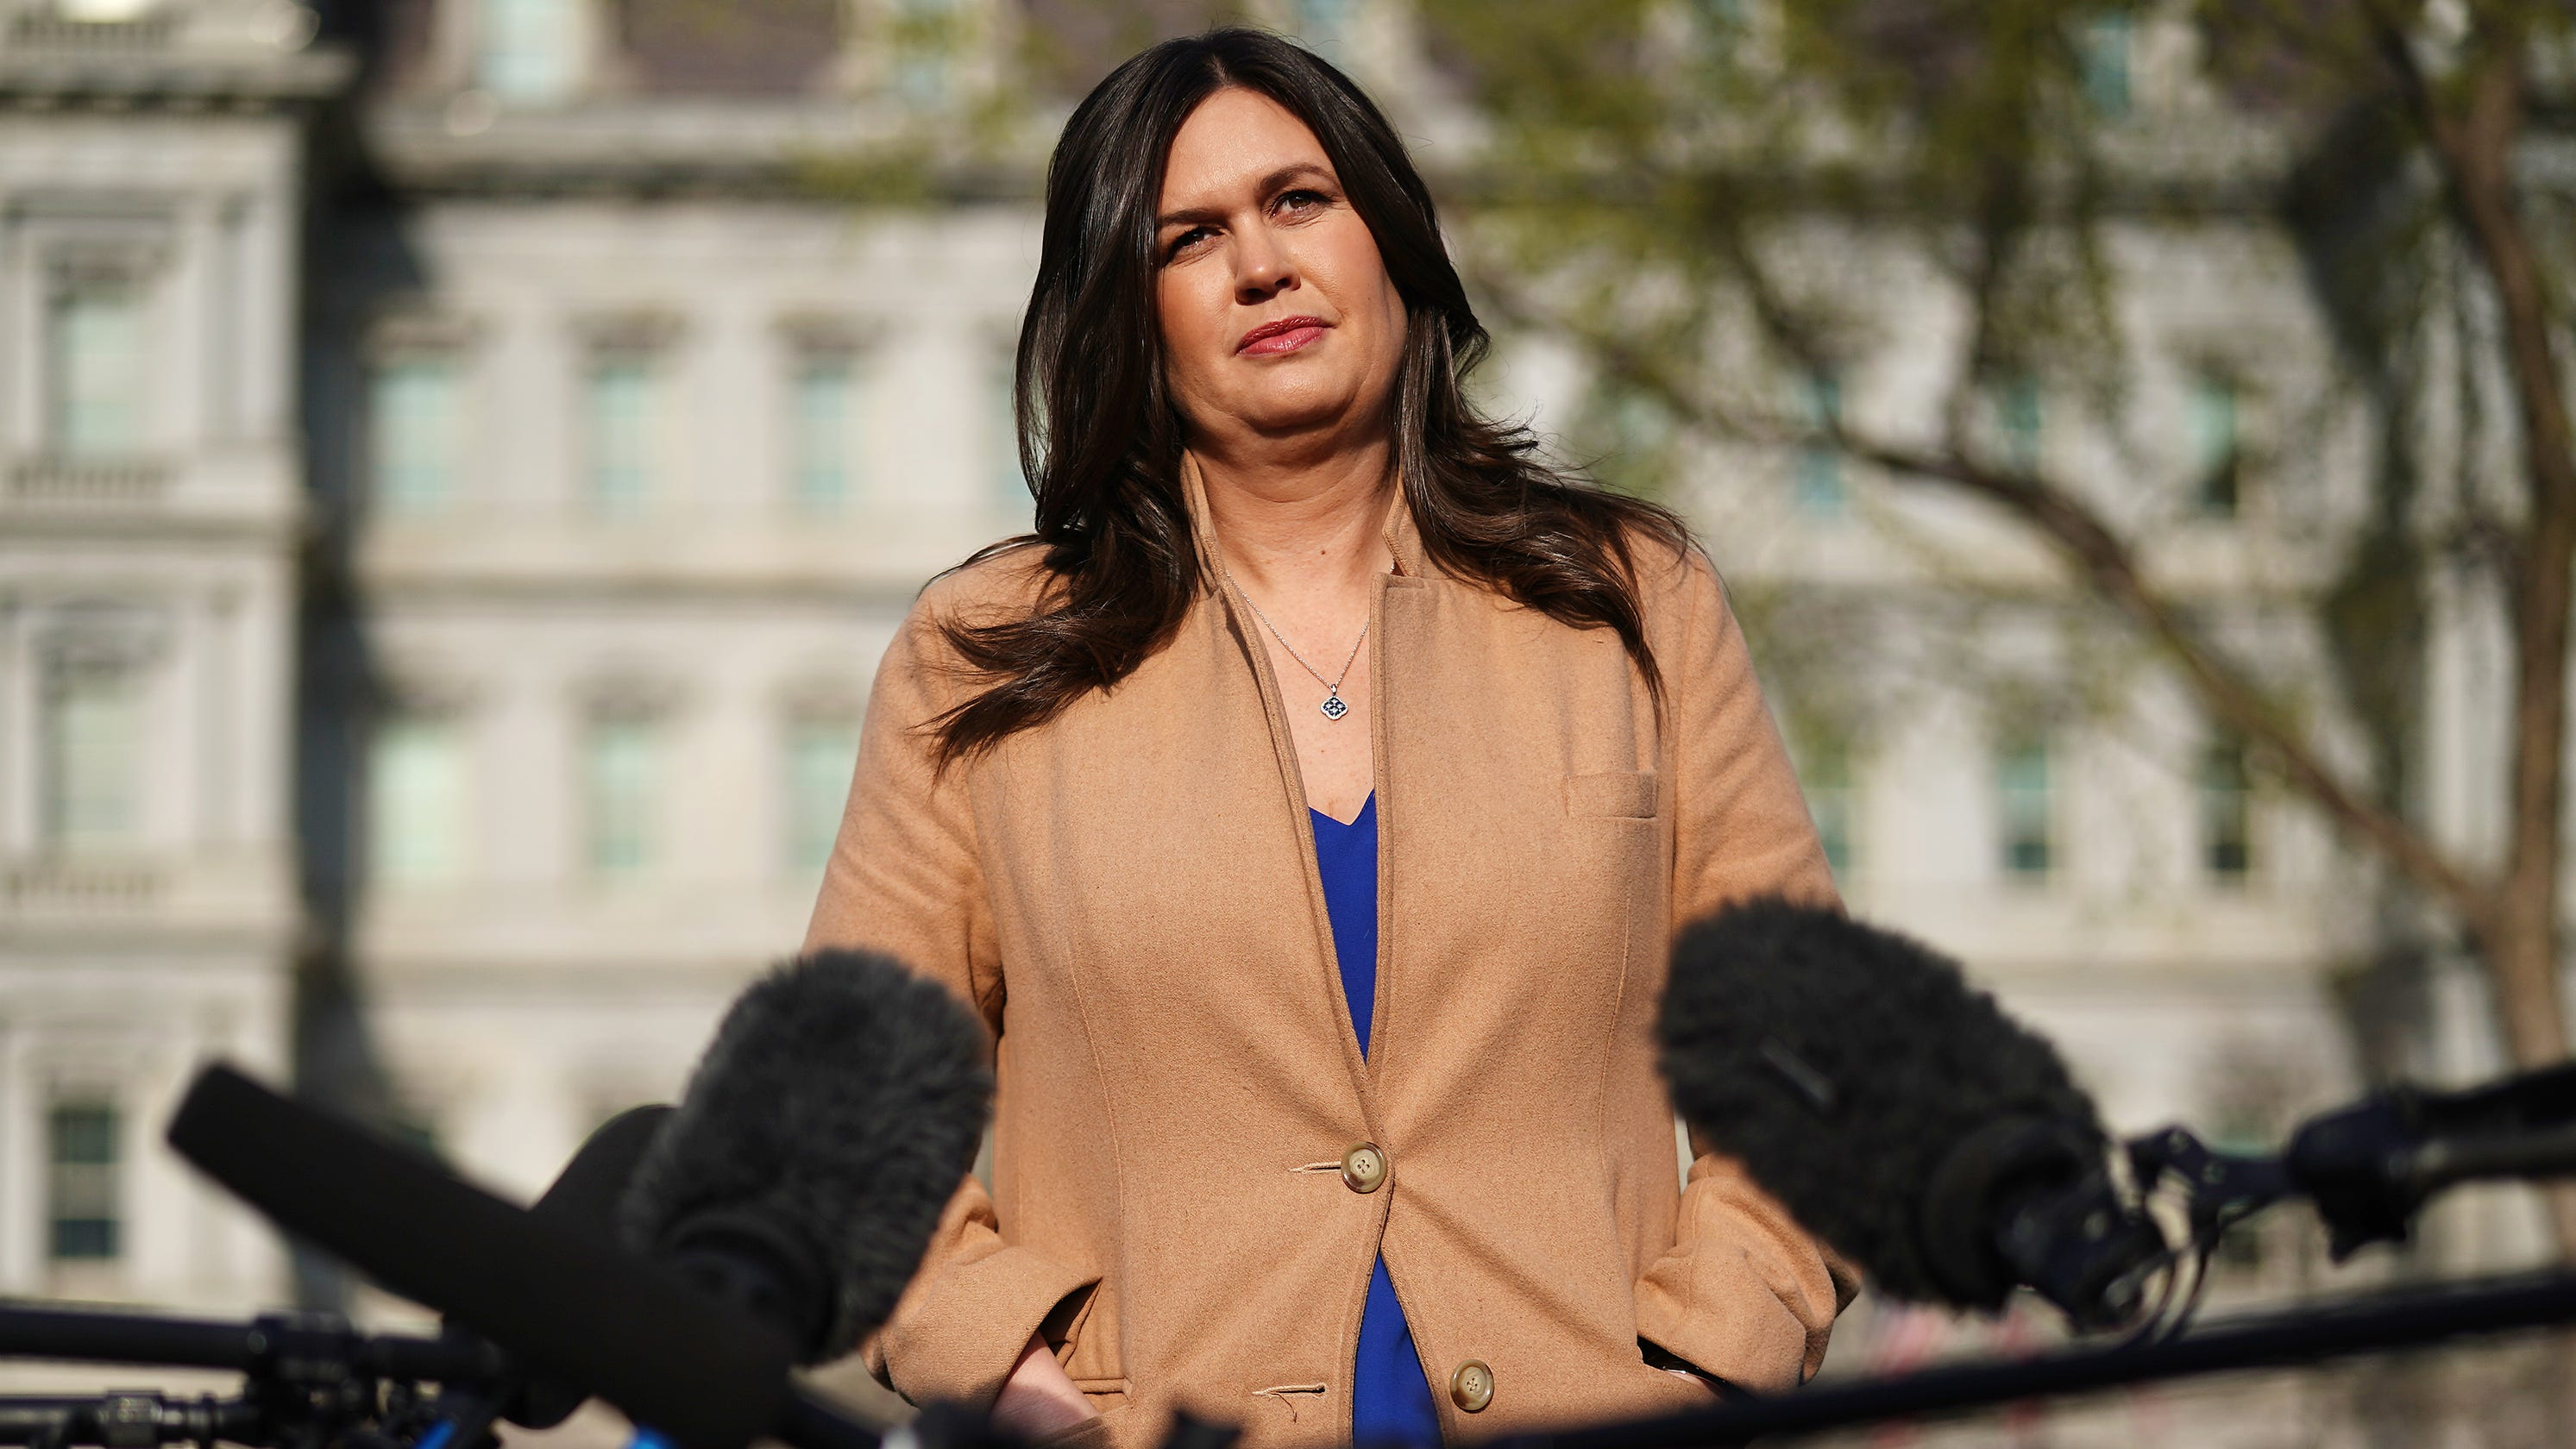 Mueller report: Sarah Sanders' fib about Comey and other lies